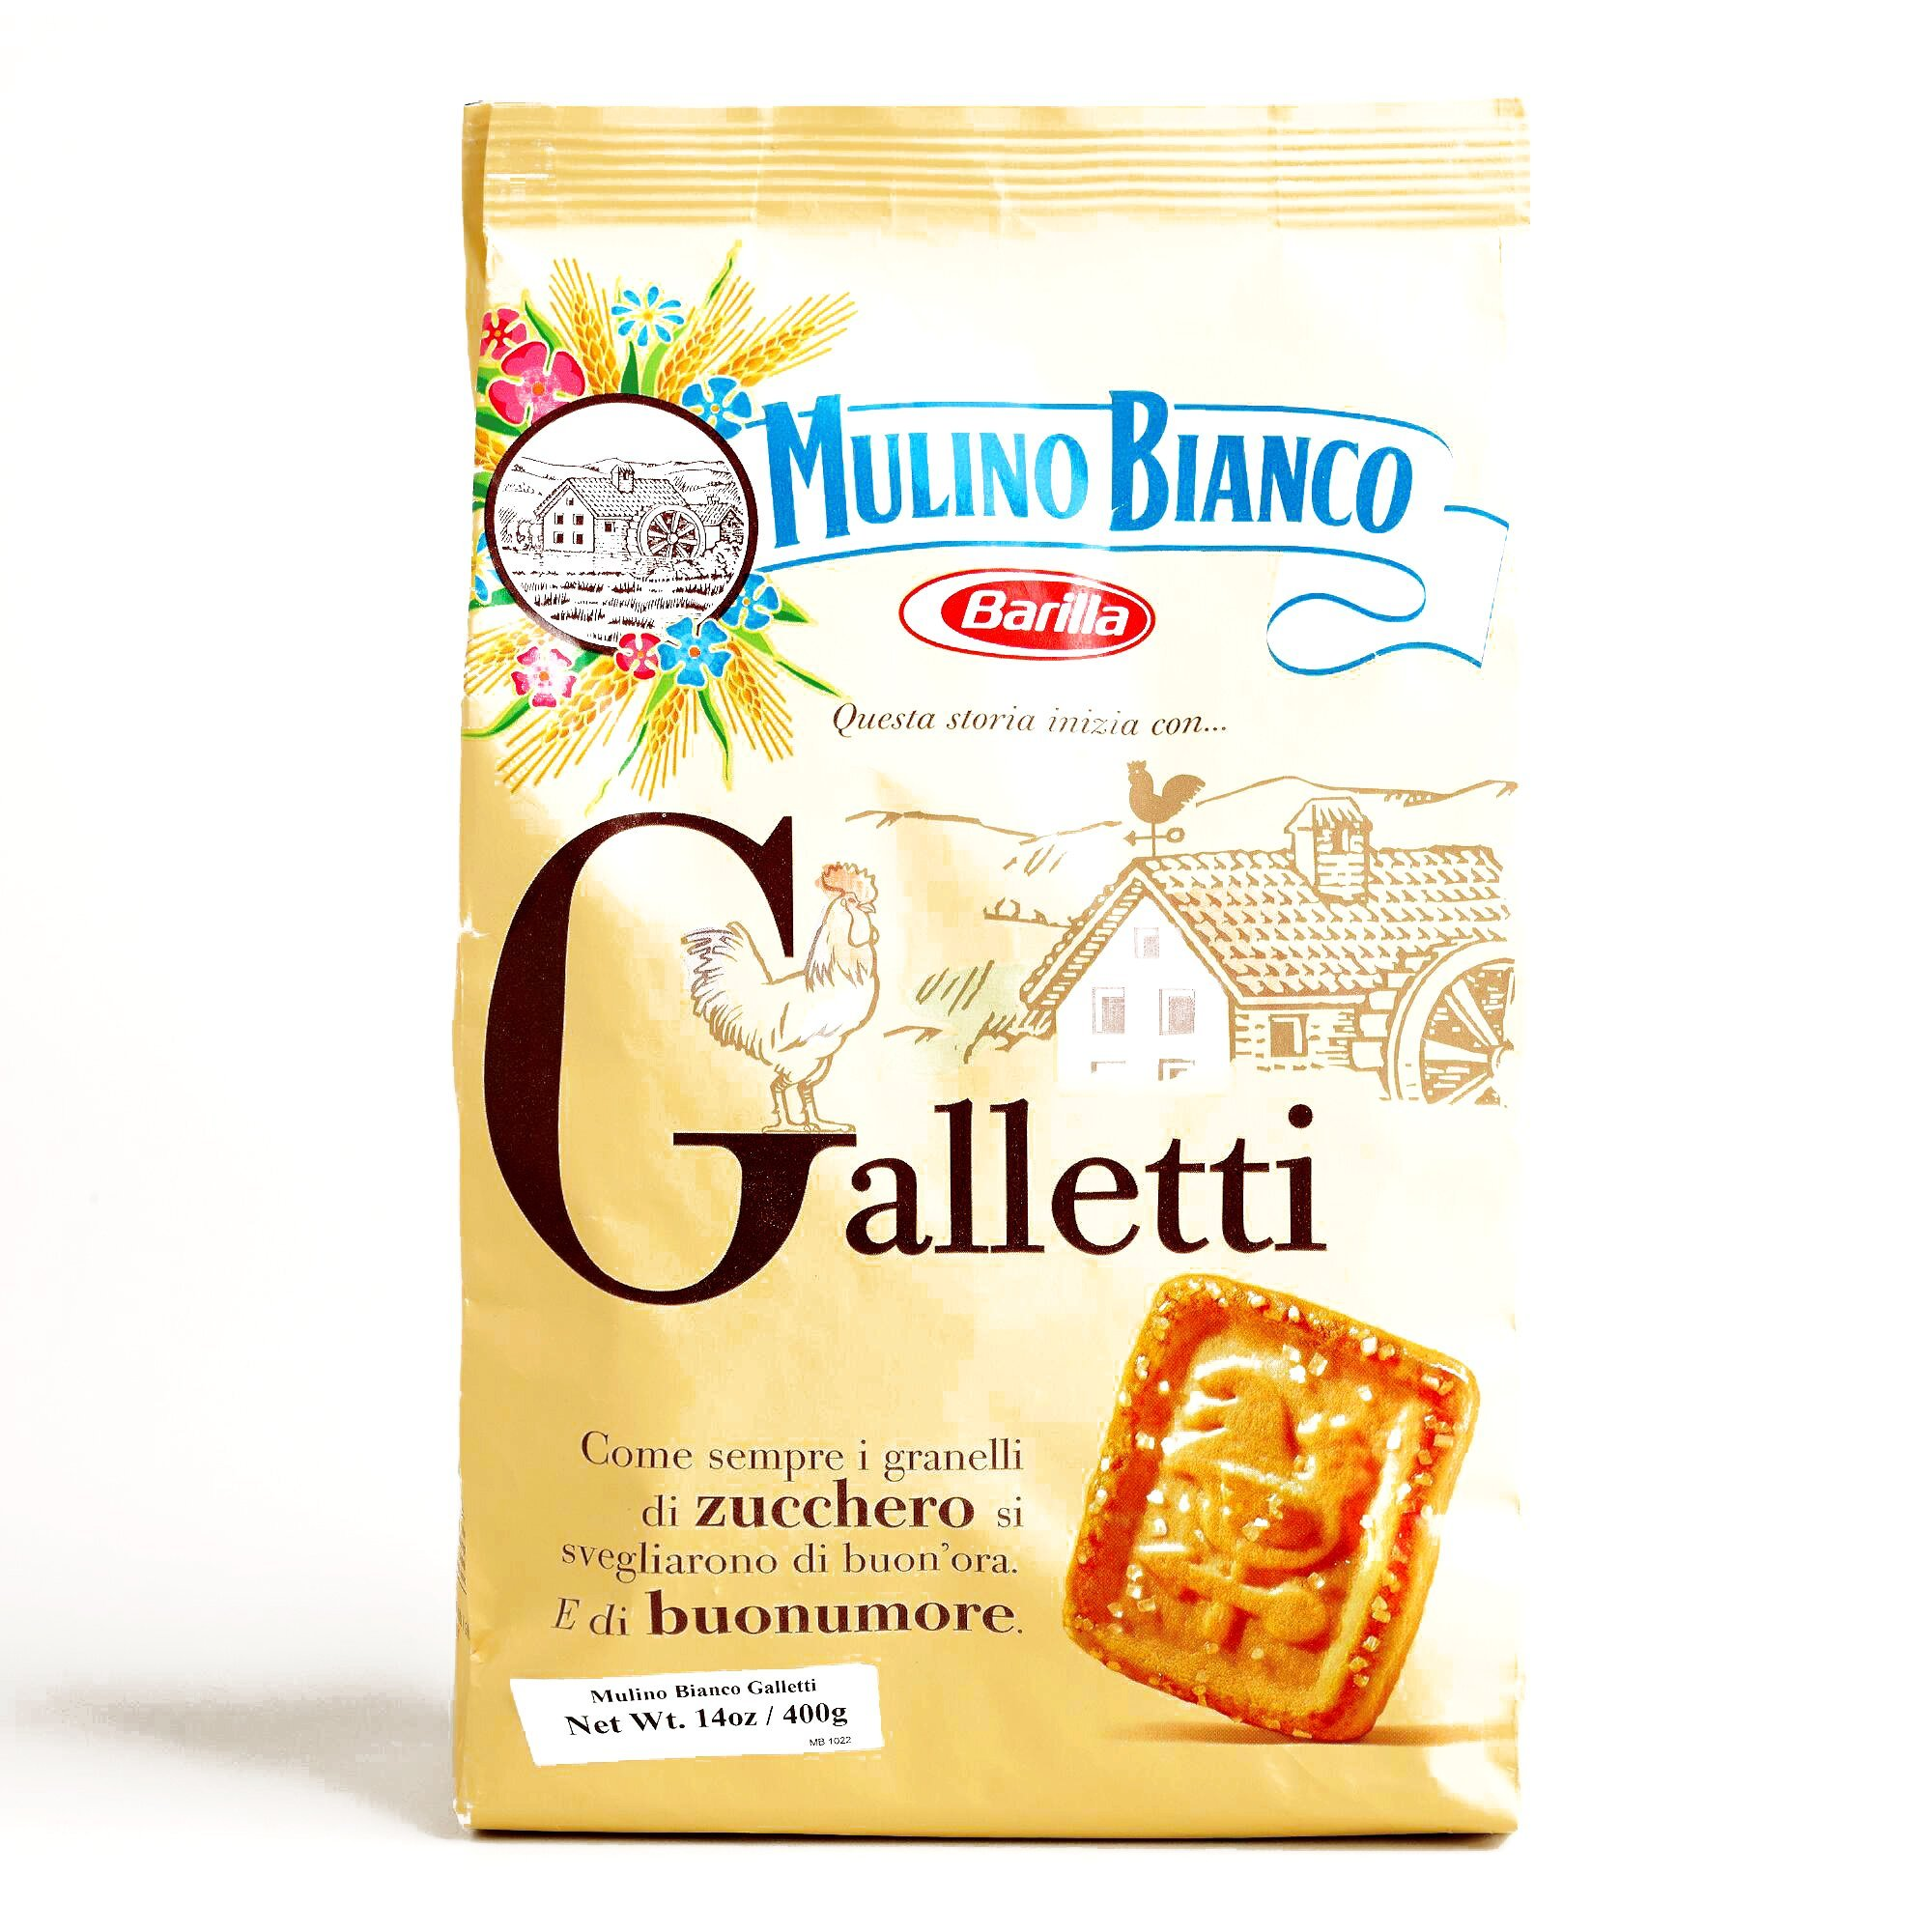 Mulino Bianco Galletti Cookies 14.1 oz each (2 Items Per Order) by Mulino Bianco